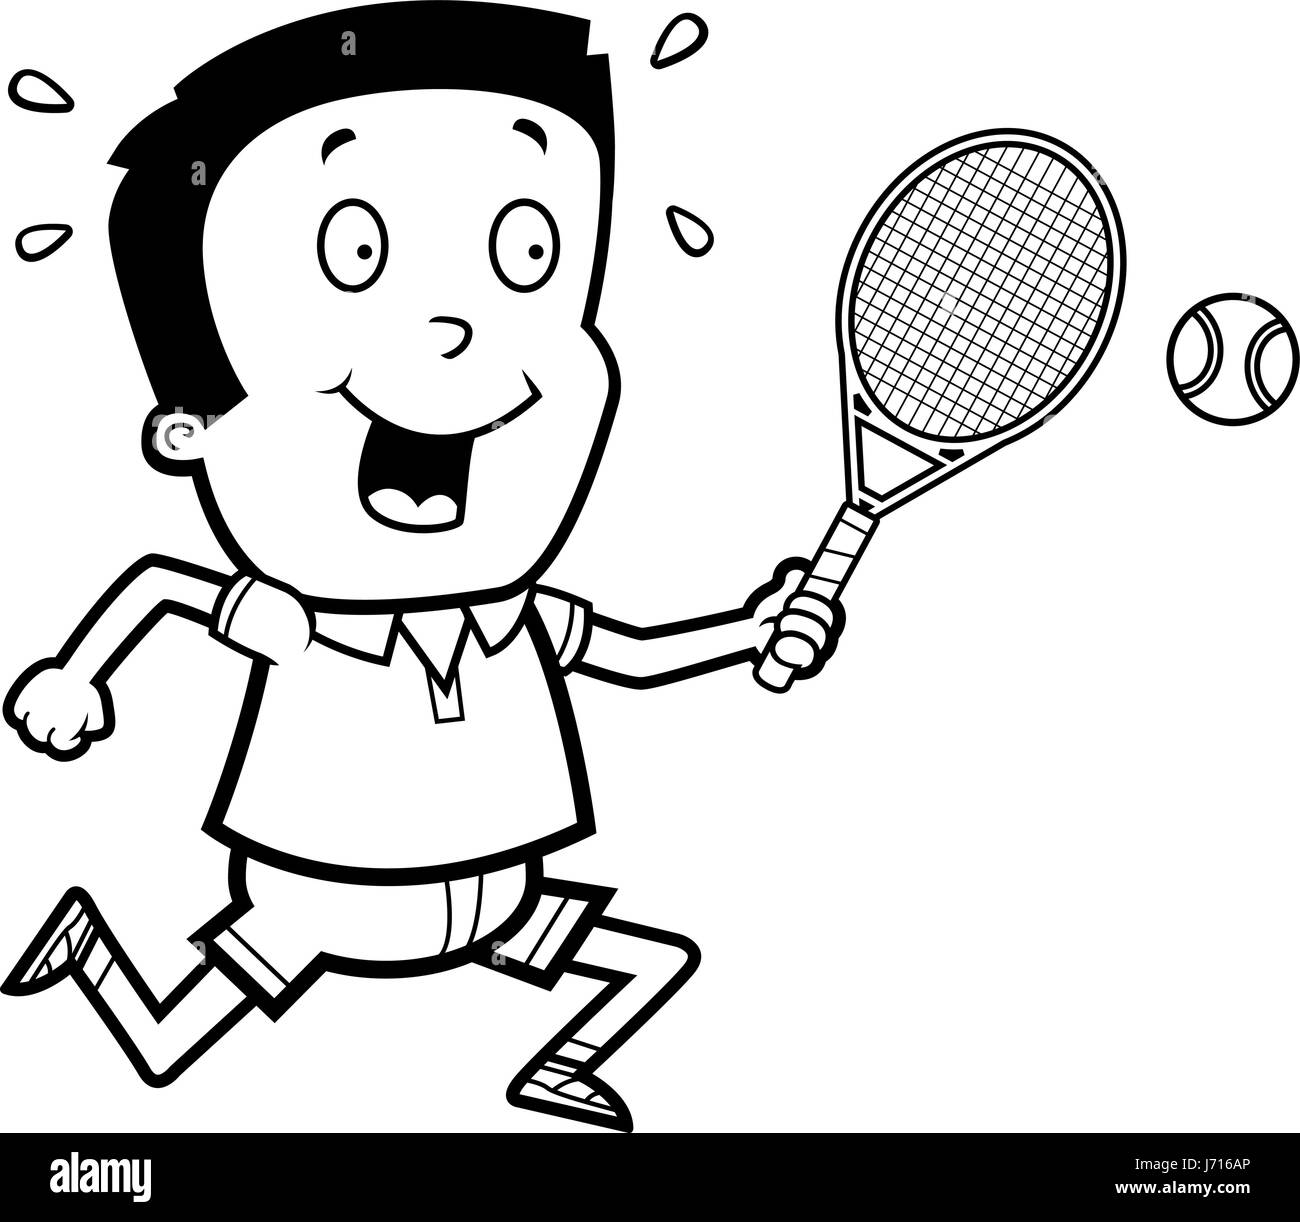 A cartoon illustration of a boy playing tennis. - Stock Image